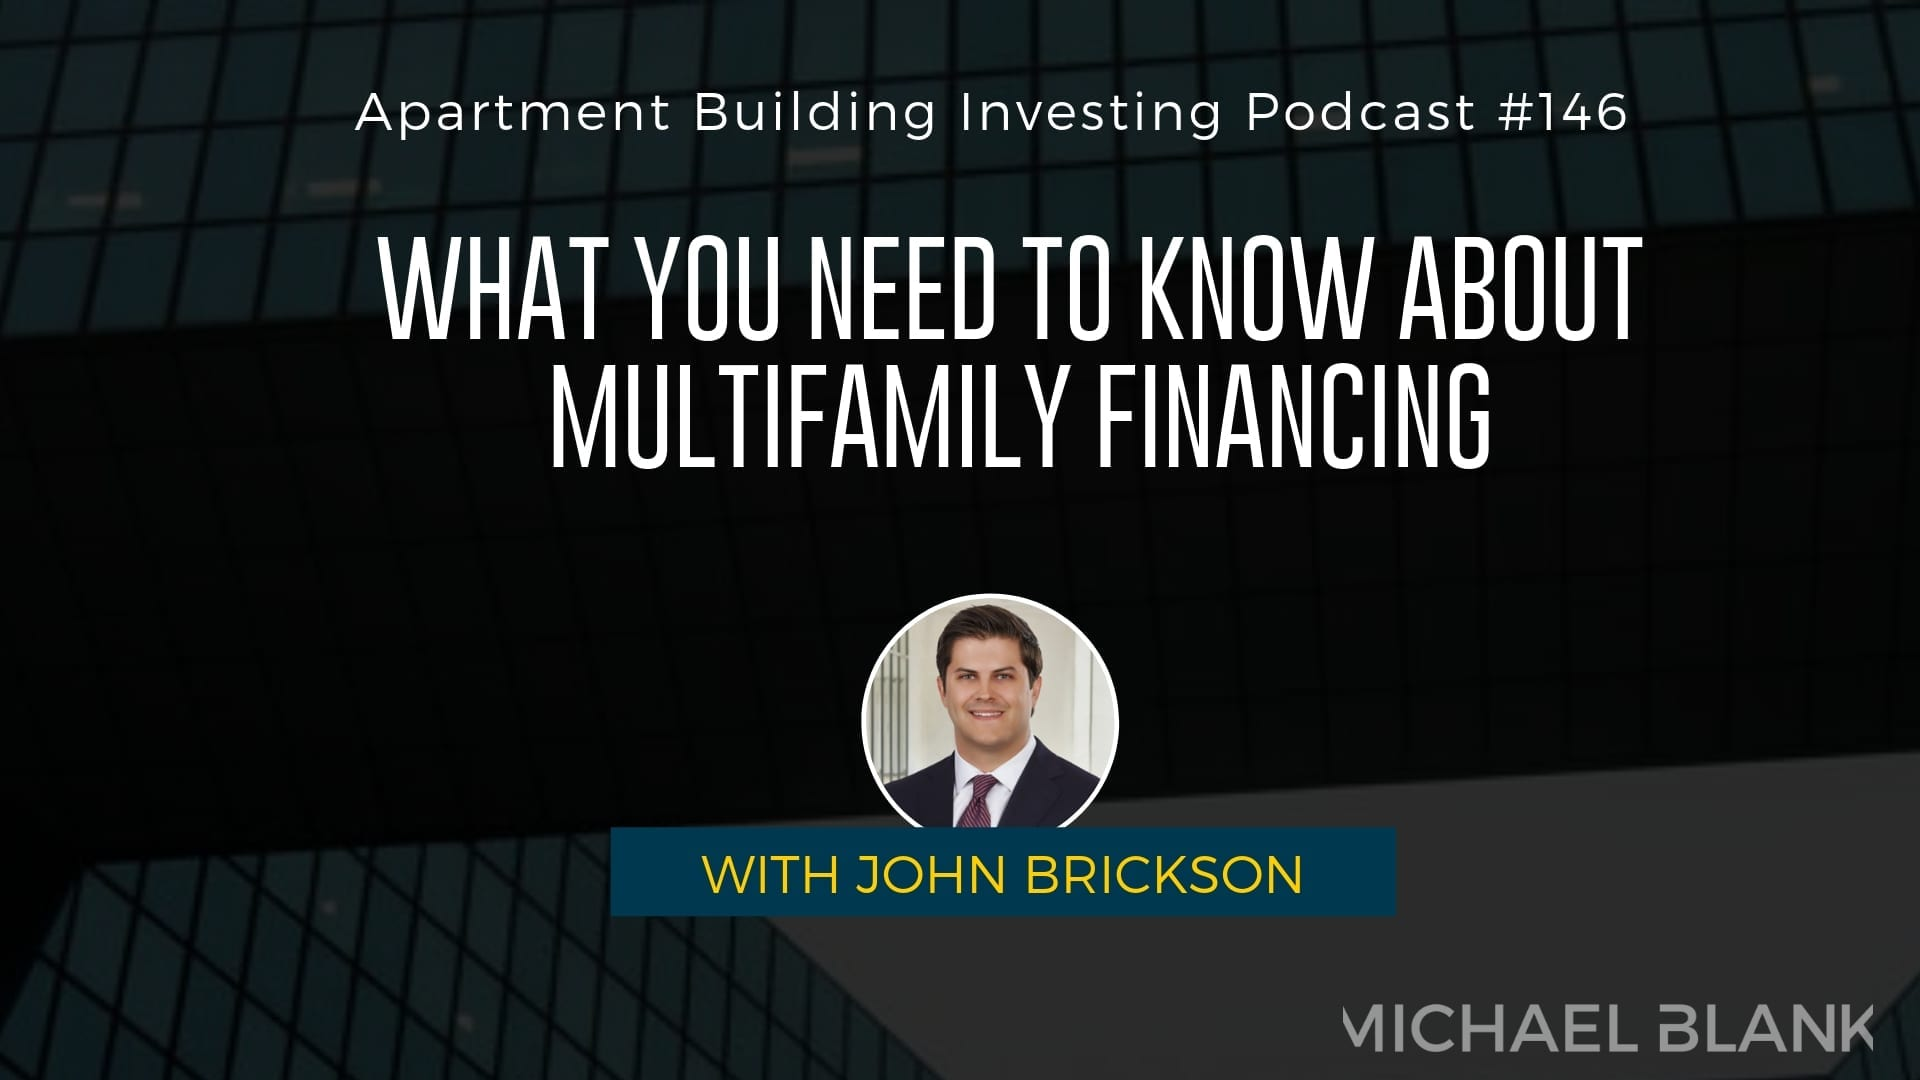 MB 146: What You Need to Know About Multifamily Financing – With John Brickson